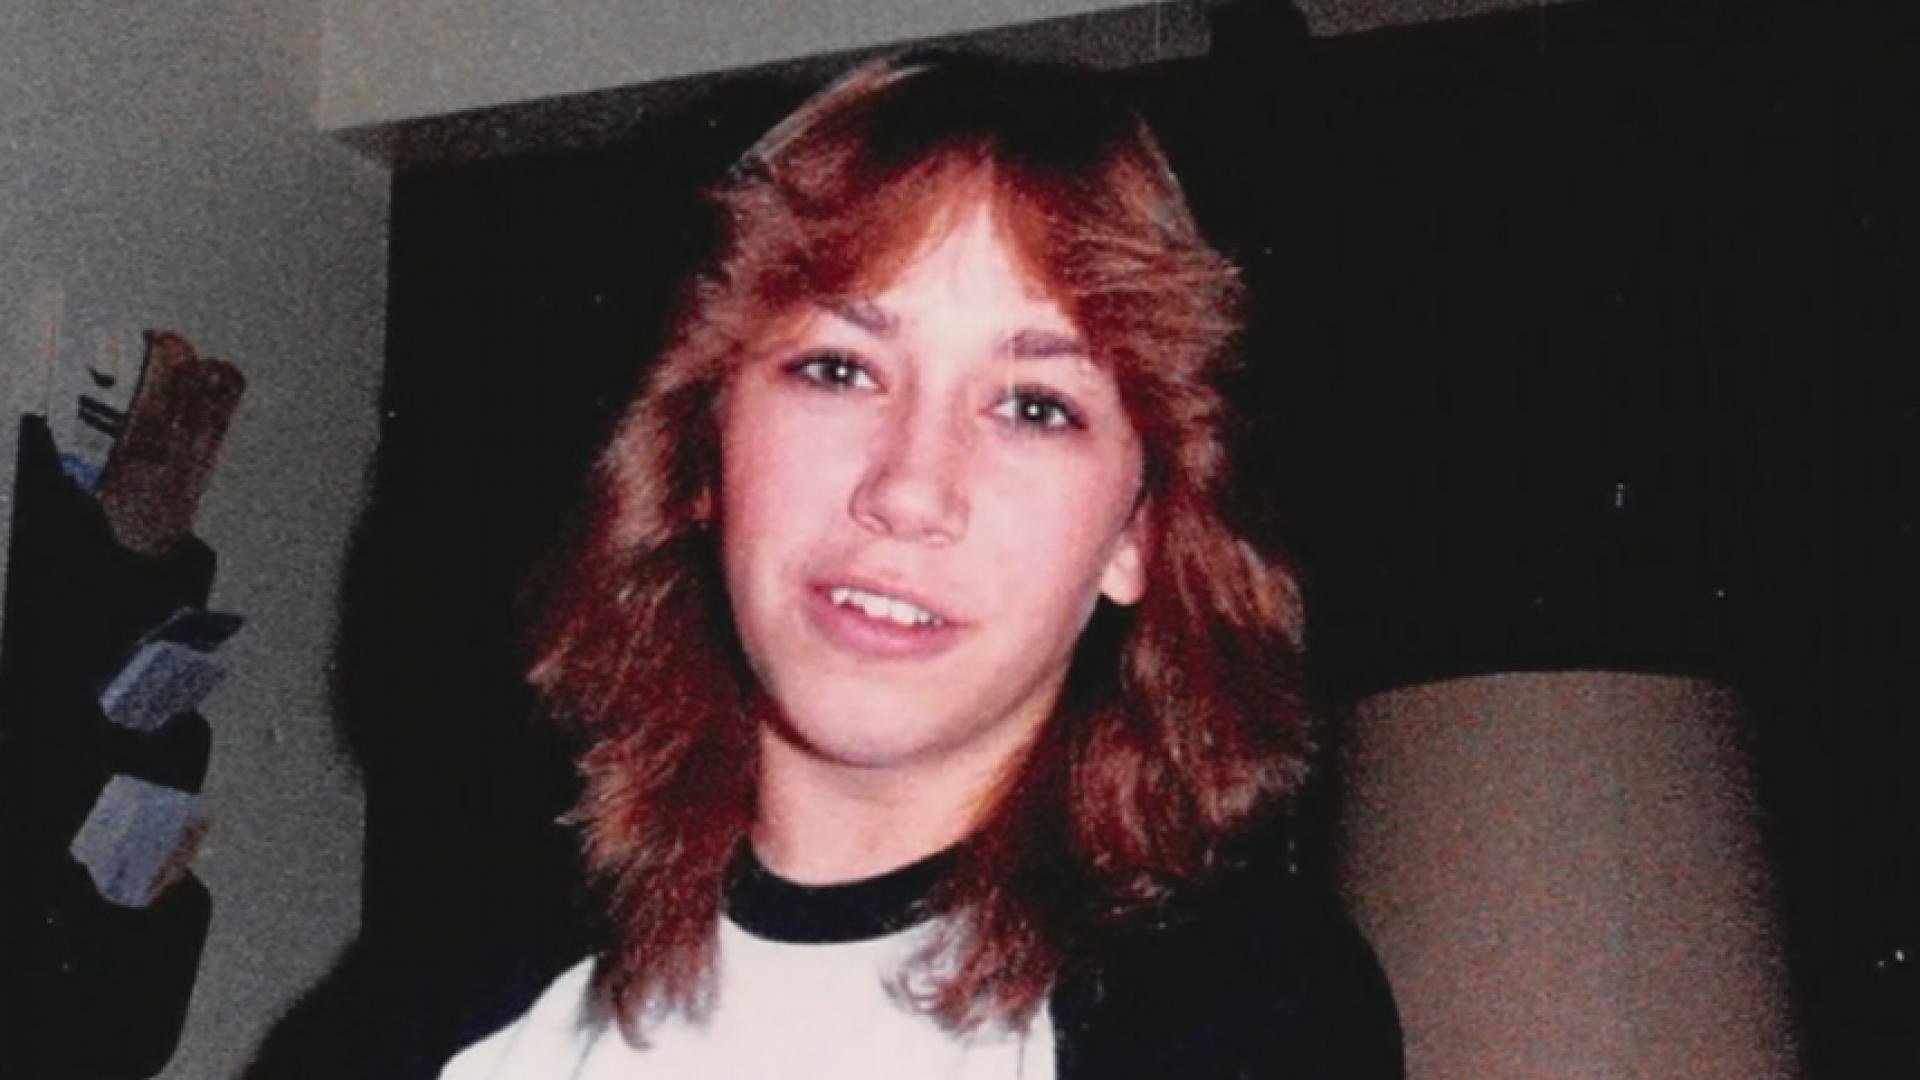 35-year-old cold case murder in Wisconsin solved using DNA and genealogy, police say